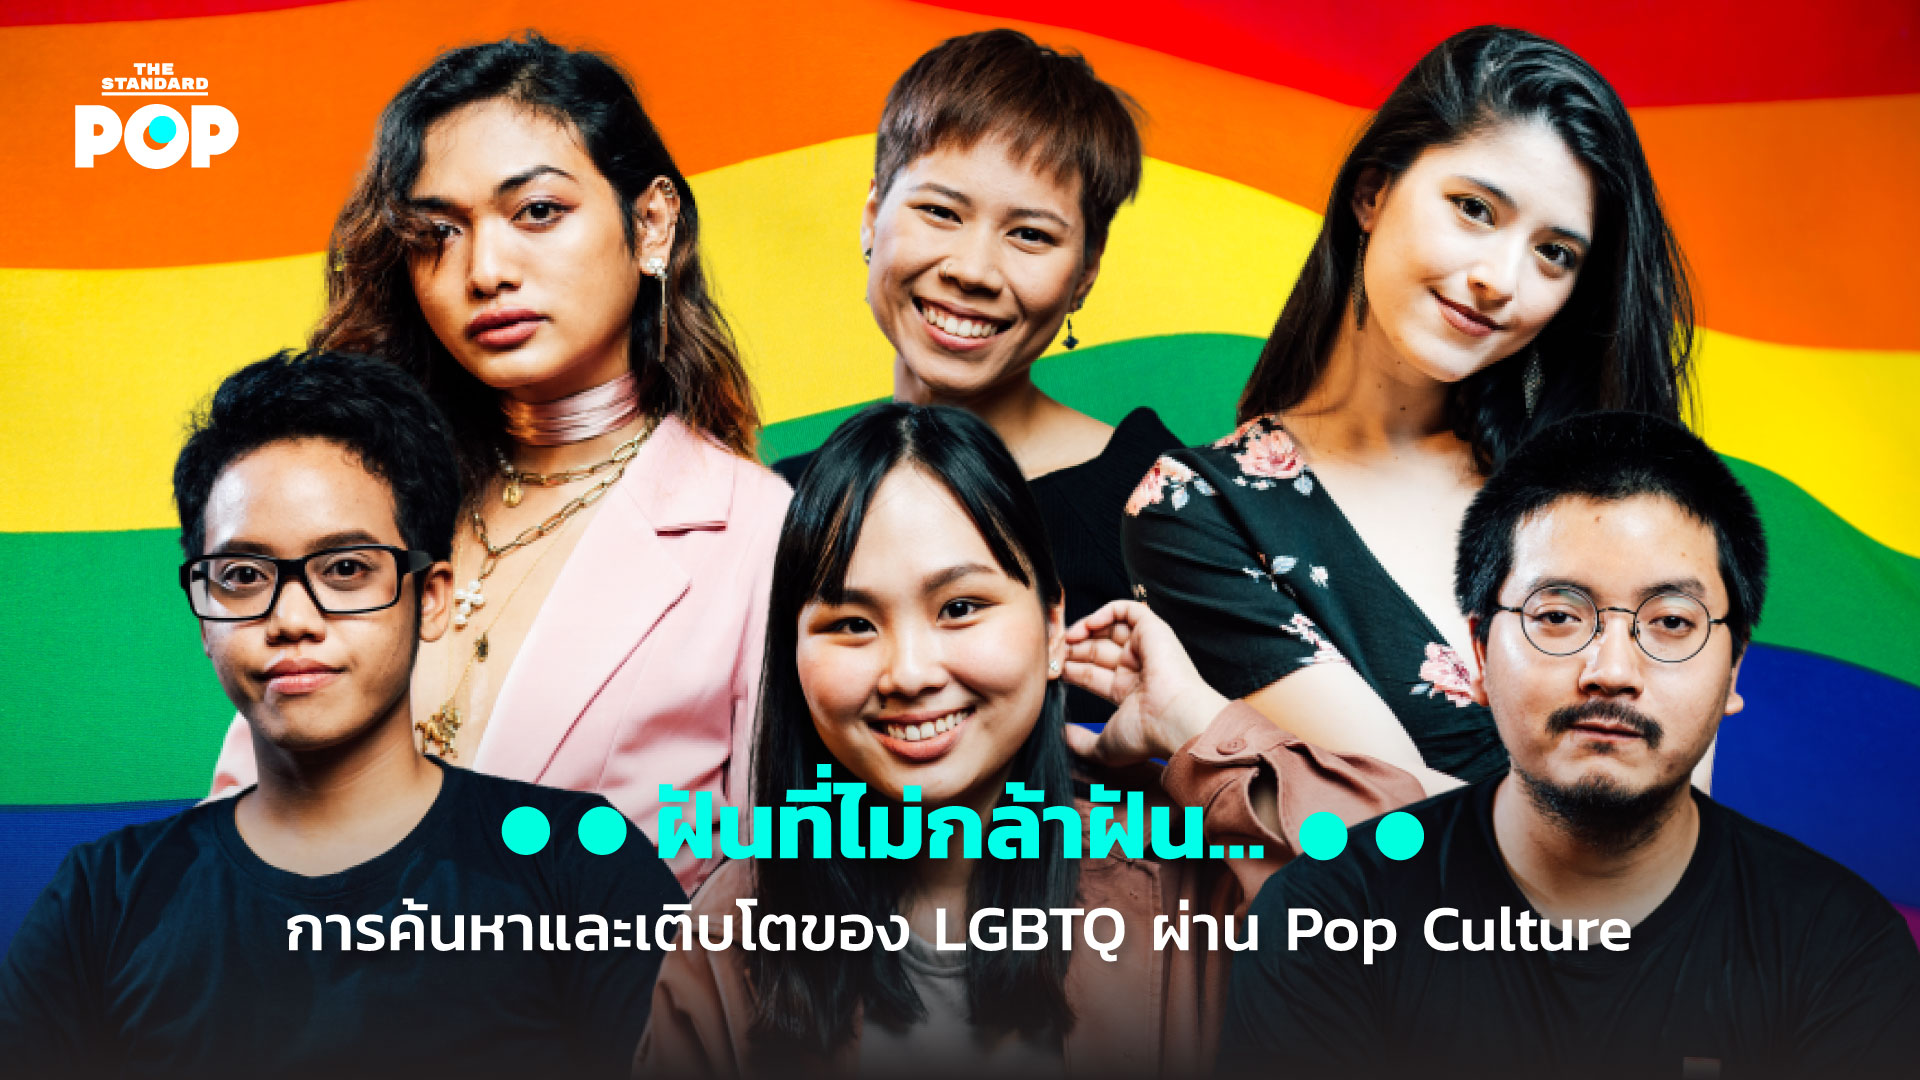 'To Dream The Impossible Dream': Thai LGBTQ's Life Journey and Self-Discovery Through Representations in Media